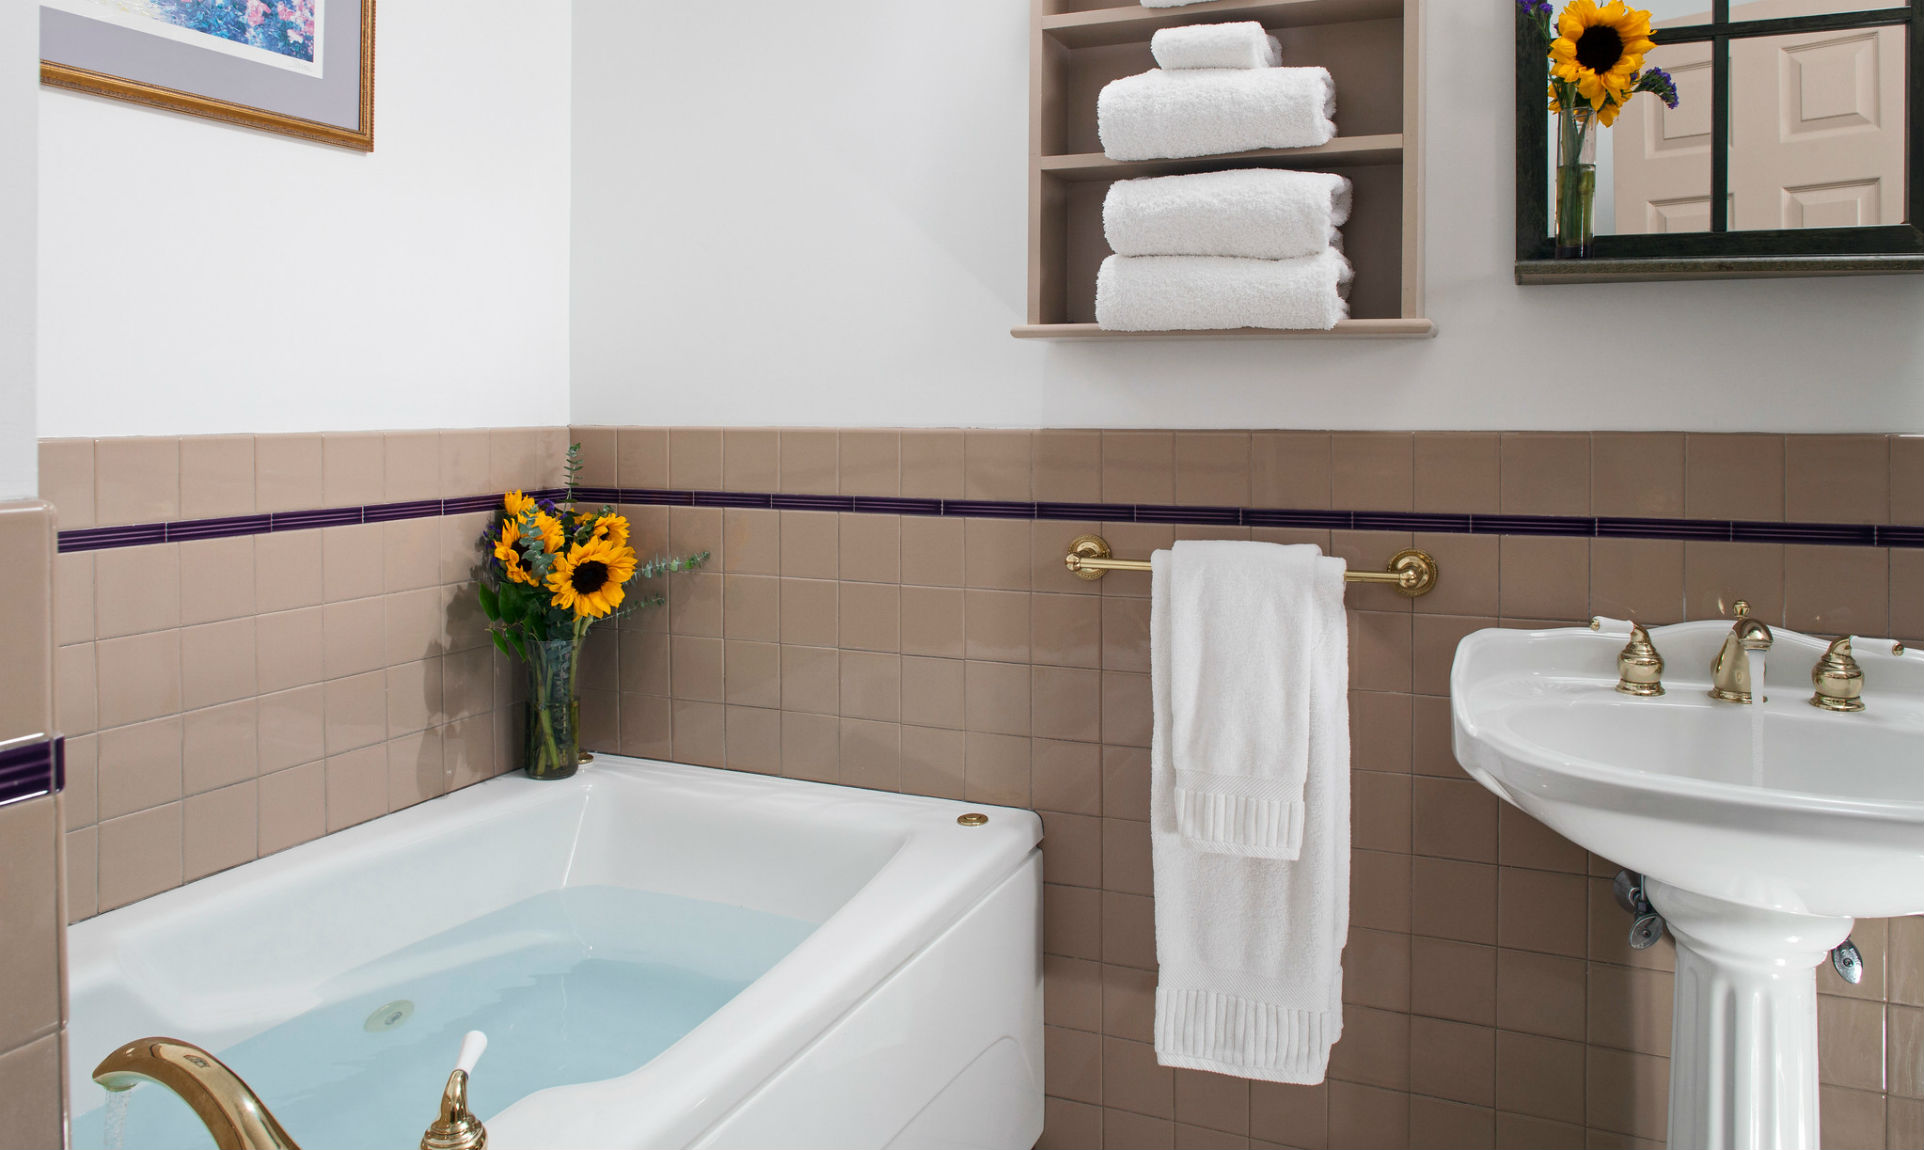 Full, warm bath with flower vase next to towel rack and sink